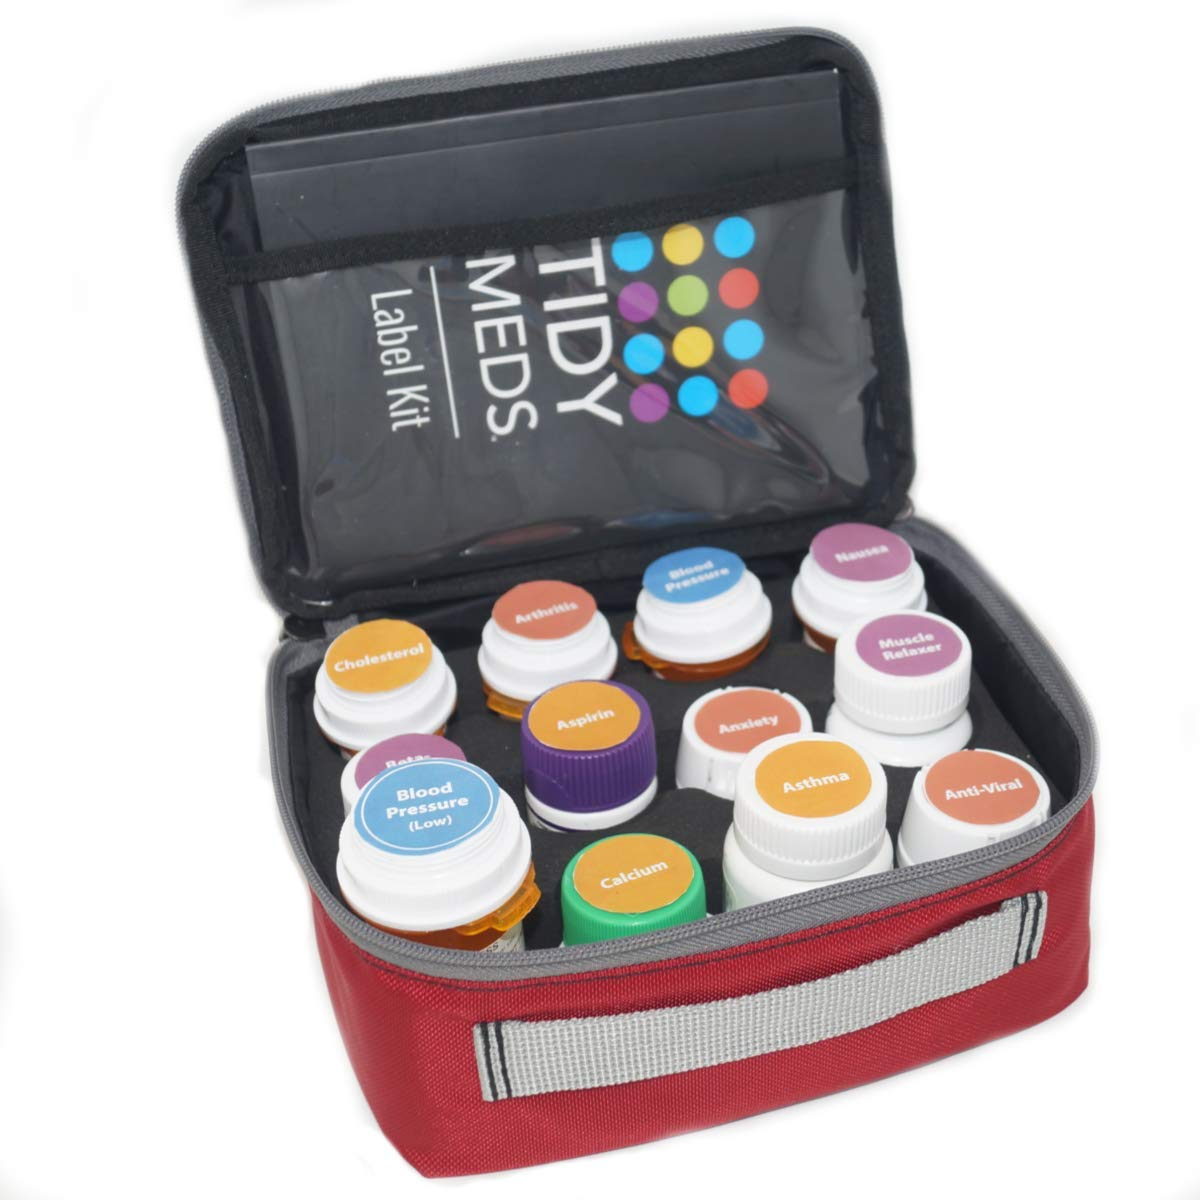 Pill Case -Label Your Prescription Bottles by Type of Condition. Over 250 Labels Included with Tidy Meds 2 Pill Case. Fits Most Bottles. by Tidy Meds